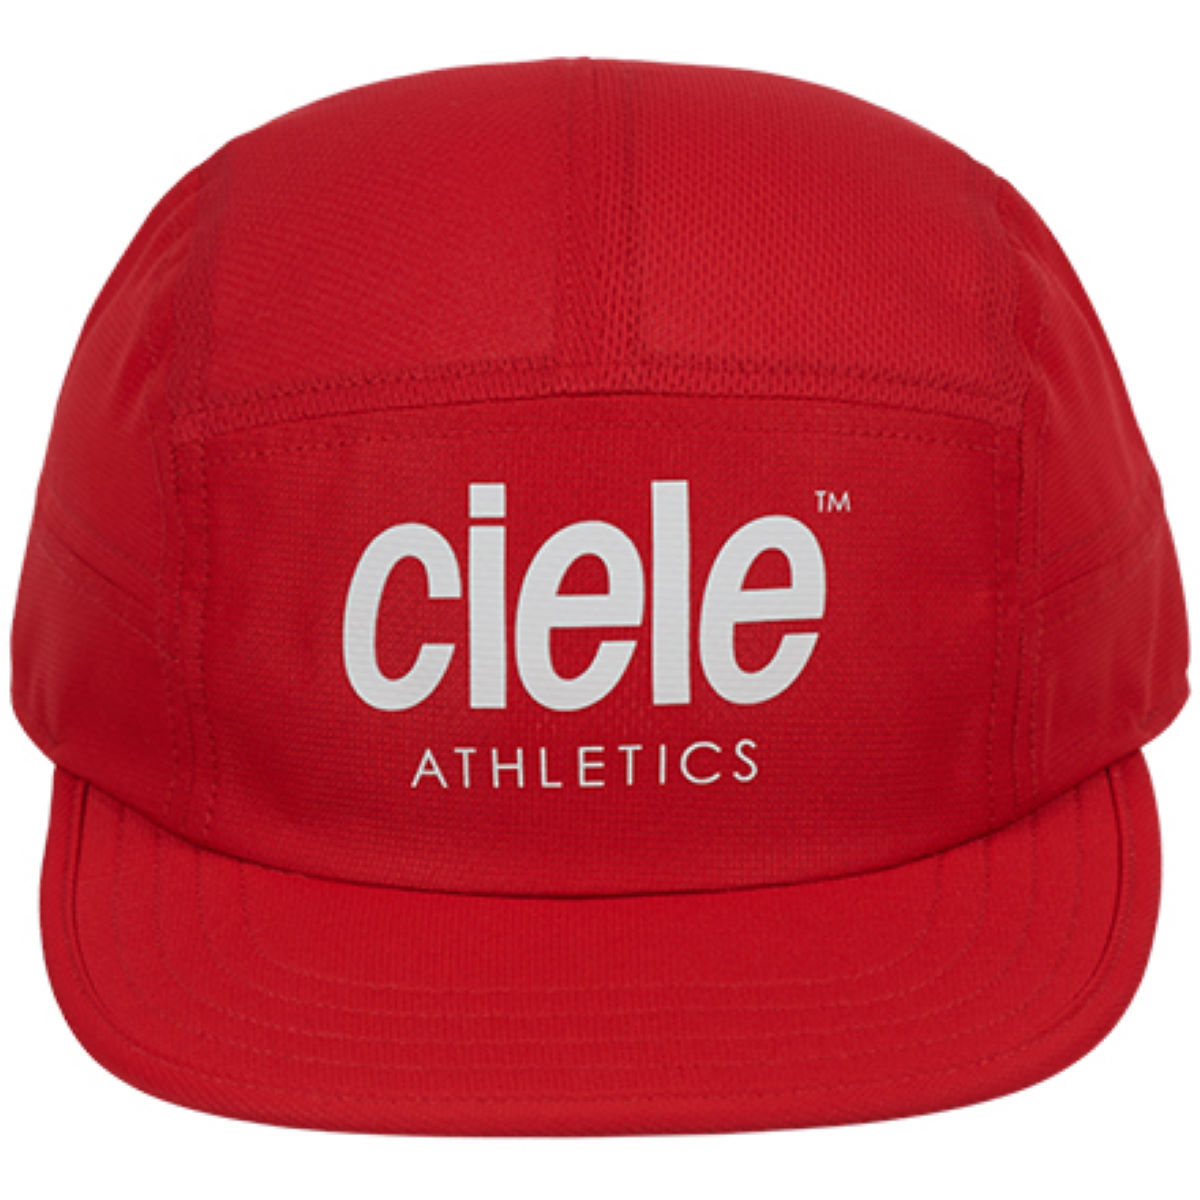 Ciele Ciele GOCap Athletics   Caps